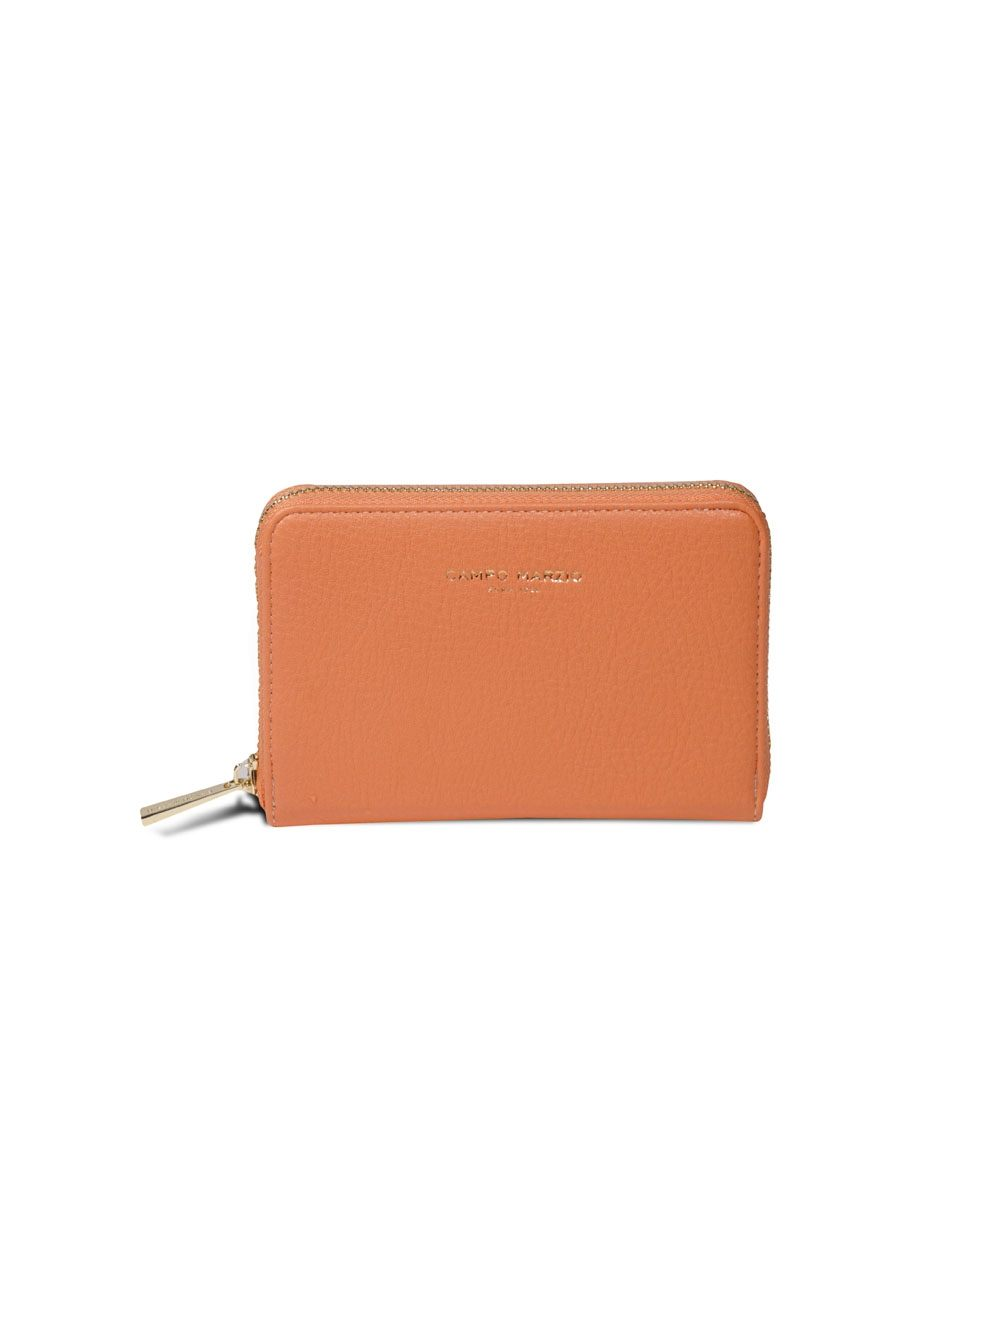 Shirley Wallet - Apricot